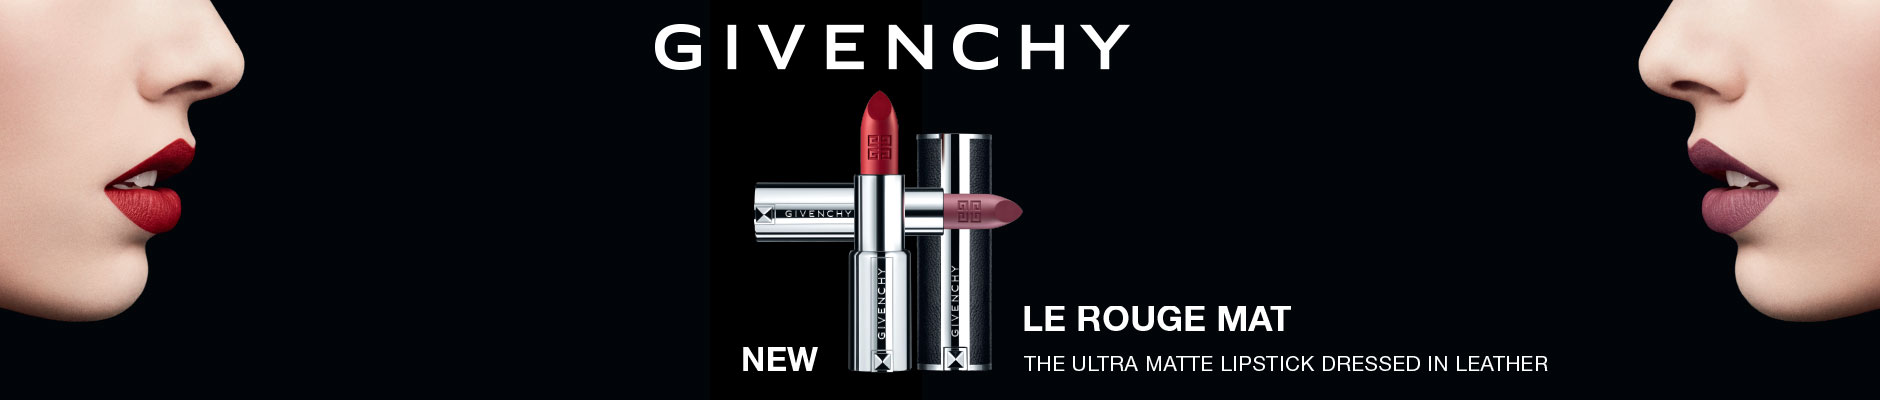 Givenchy new la rouge mat, the ultra matte lipstick dressed in leather